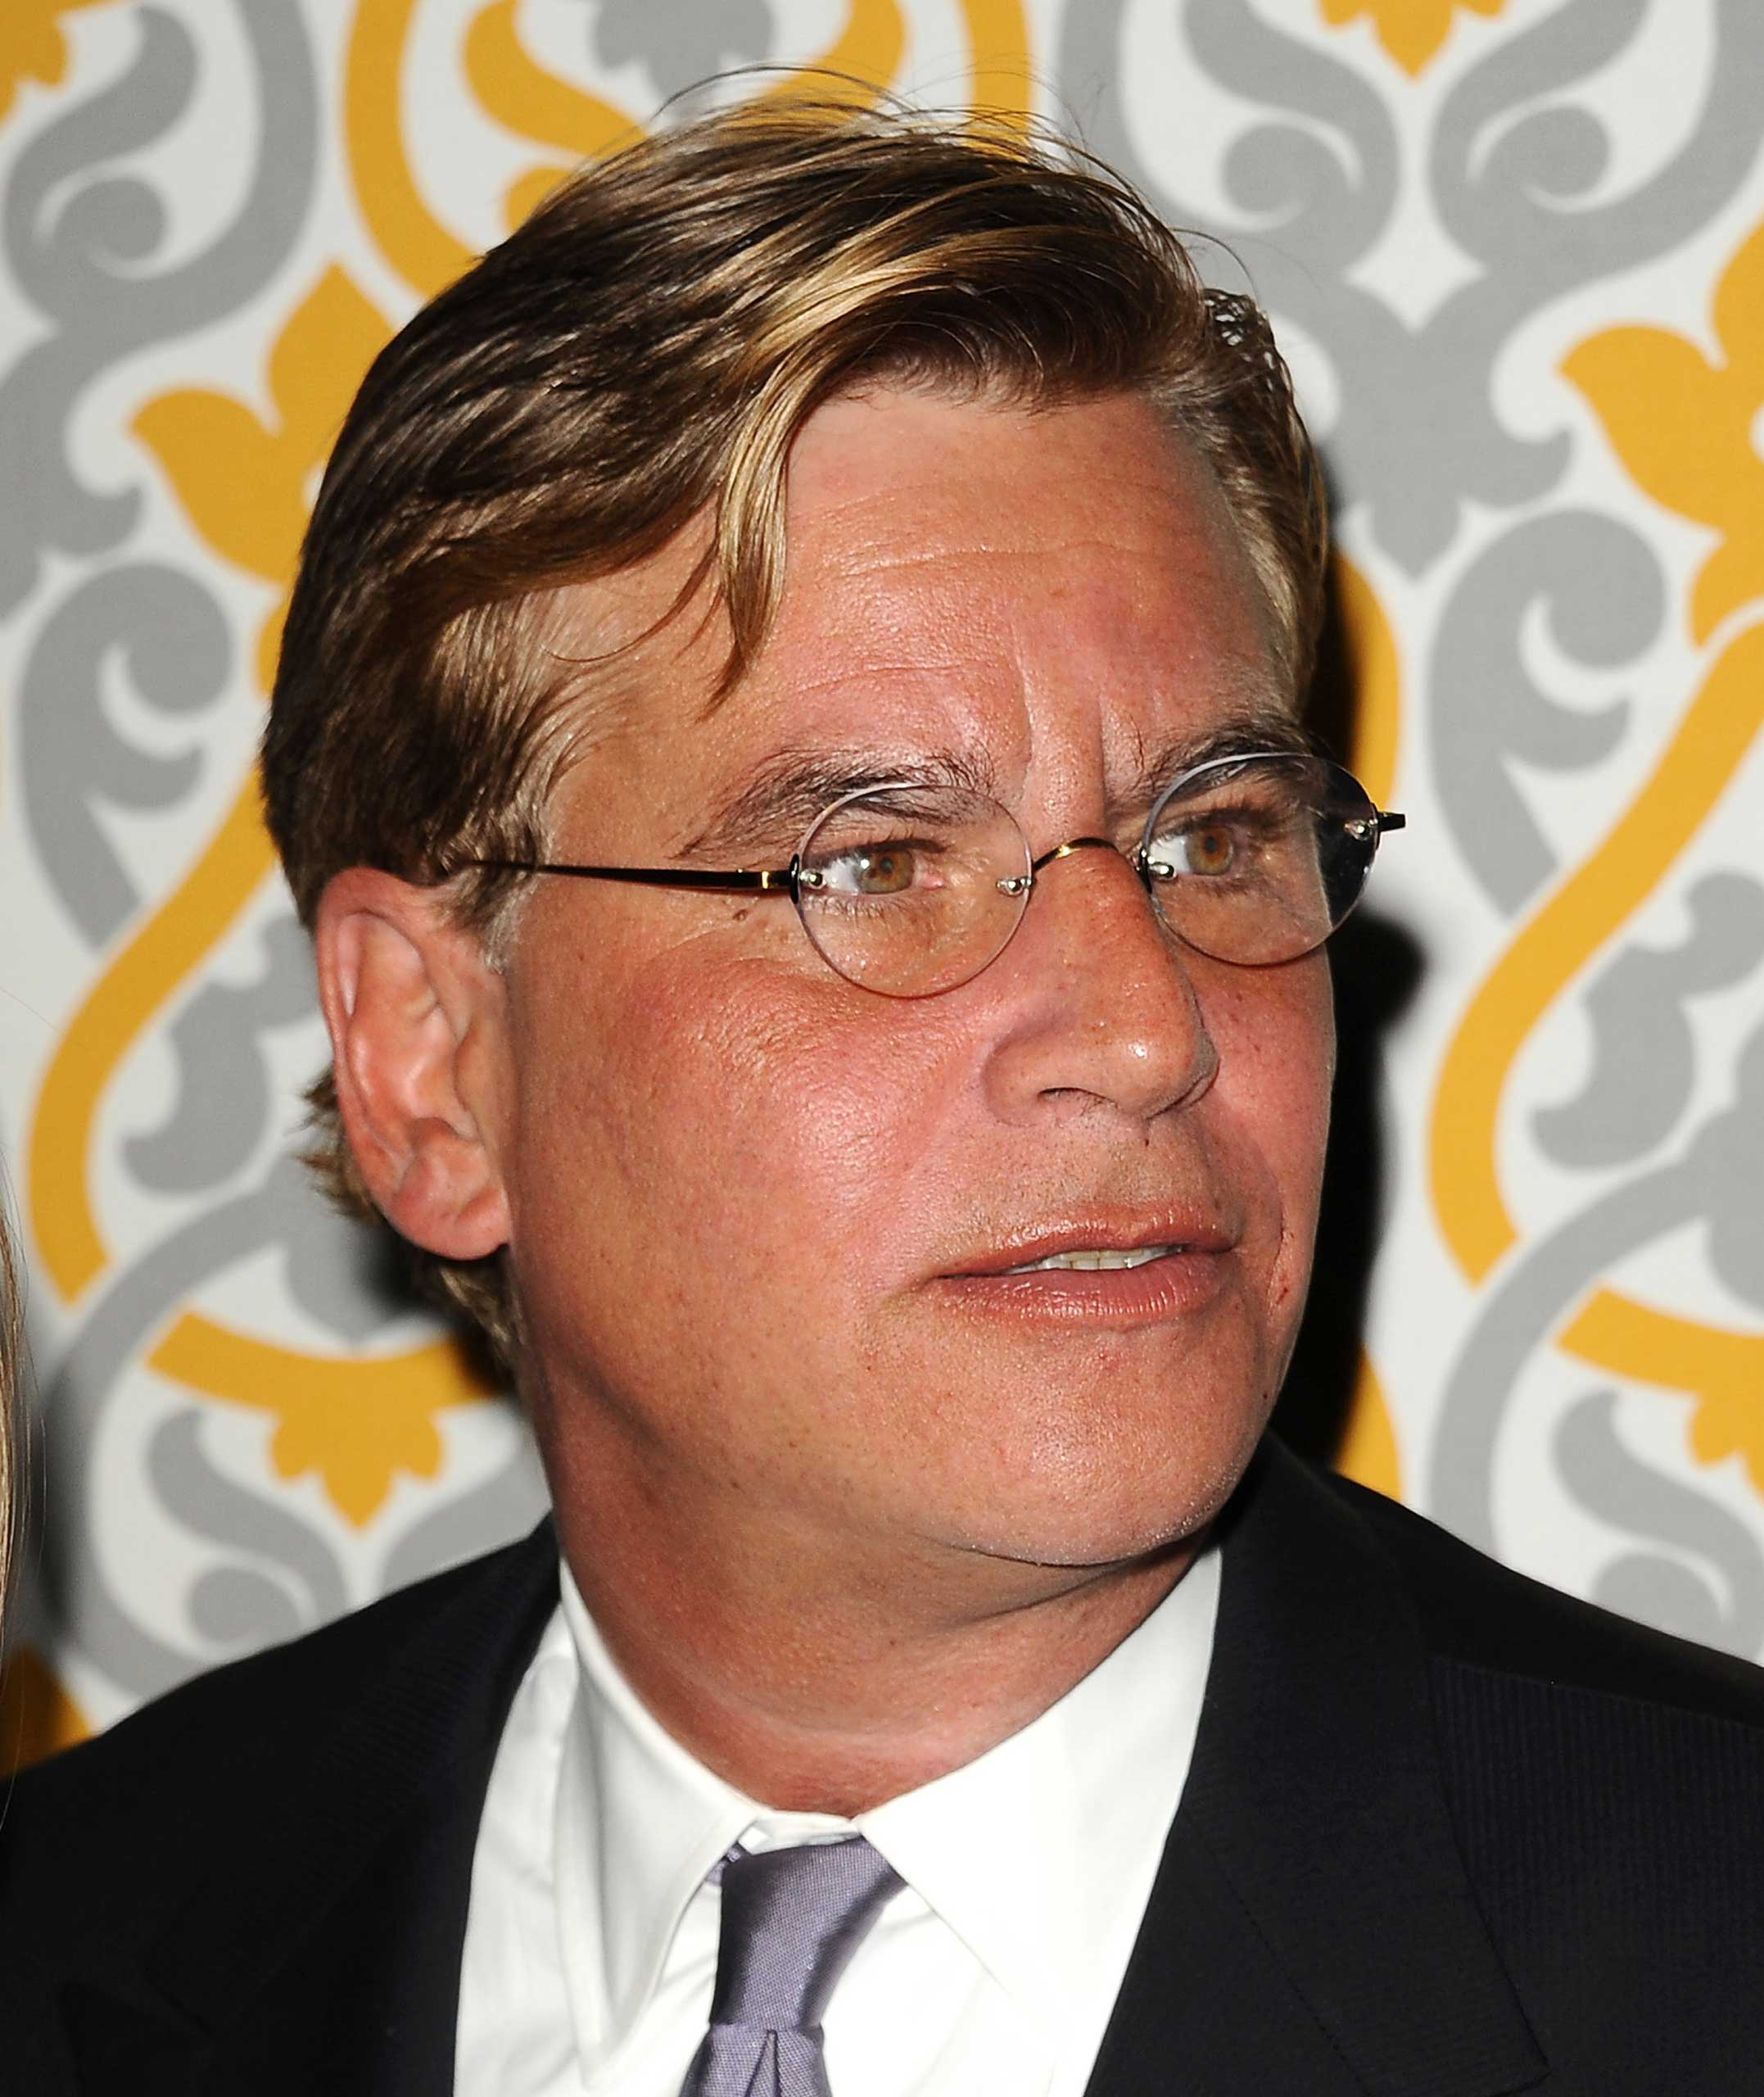 LOS ANGELES, CA - NOVEMBER 04:  Writer Aaron Sorkin attends the premiere of  The Newsroom  at DGA Theater on November 4, 2014 in Los Angeles, California.